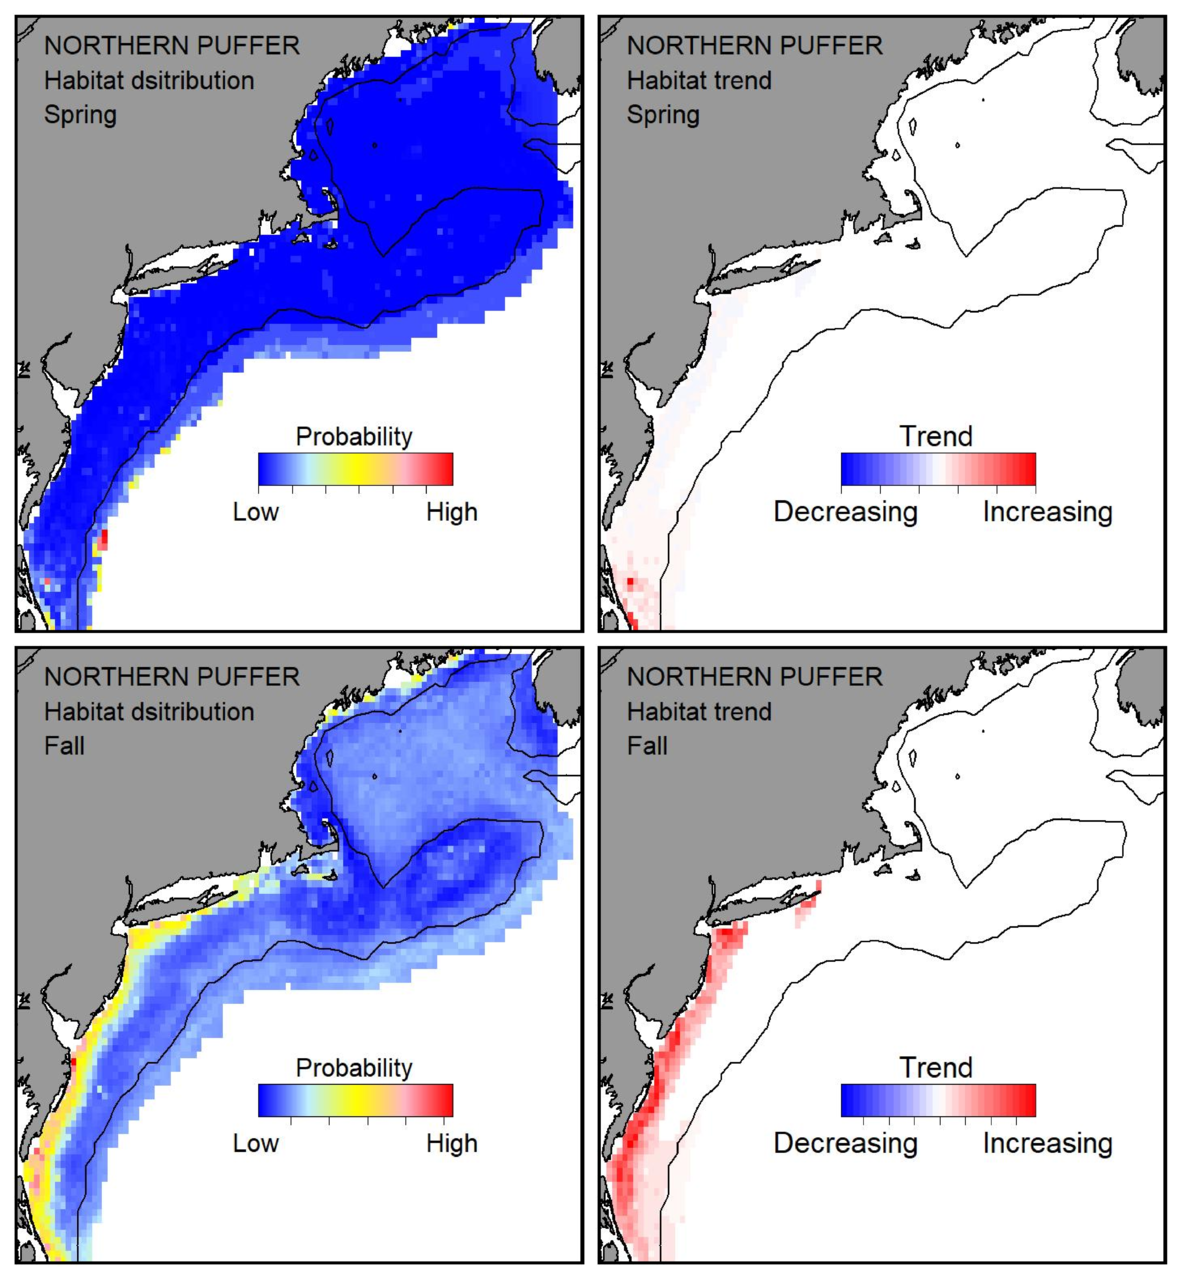 Probable habitat distribution for northern puffer showing the highest concentration and increasing trend in the Gulf of Maine during the spring. Bottom row: Probable habitat distribution for northern puffer showing the highest concentration and increasing trend in the Gulf of Maine during the fall.